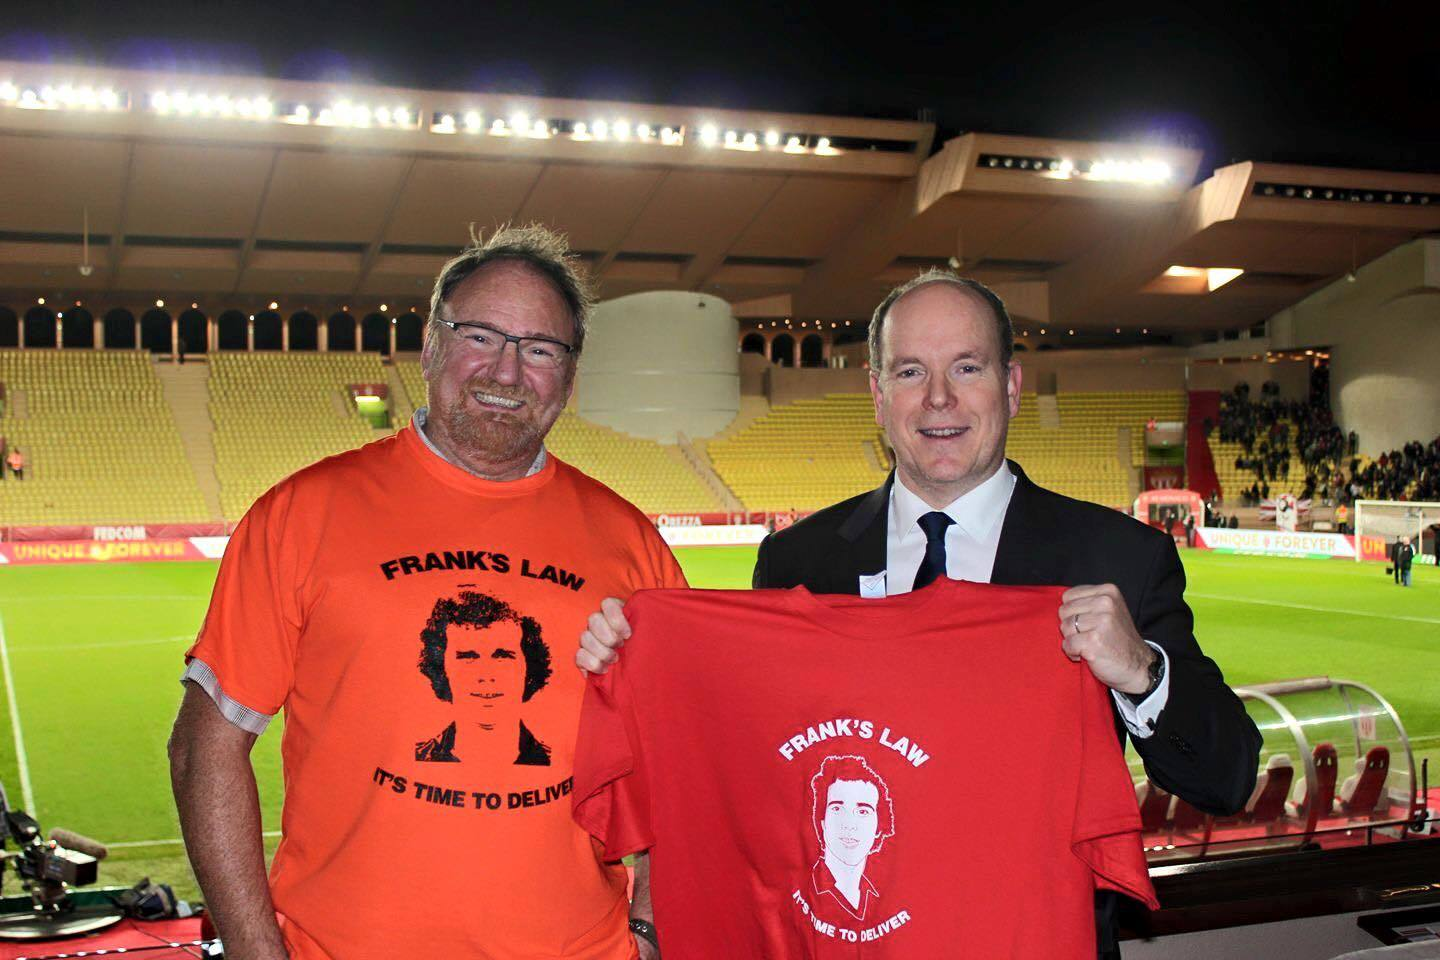 Prince Albert II (right) with his Frank's Law t-shirt and Rob Morrison at the Stade Louis II